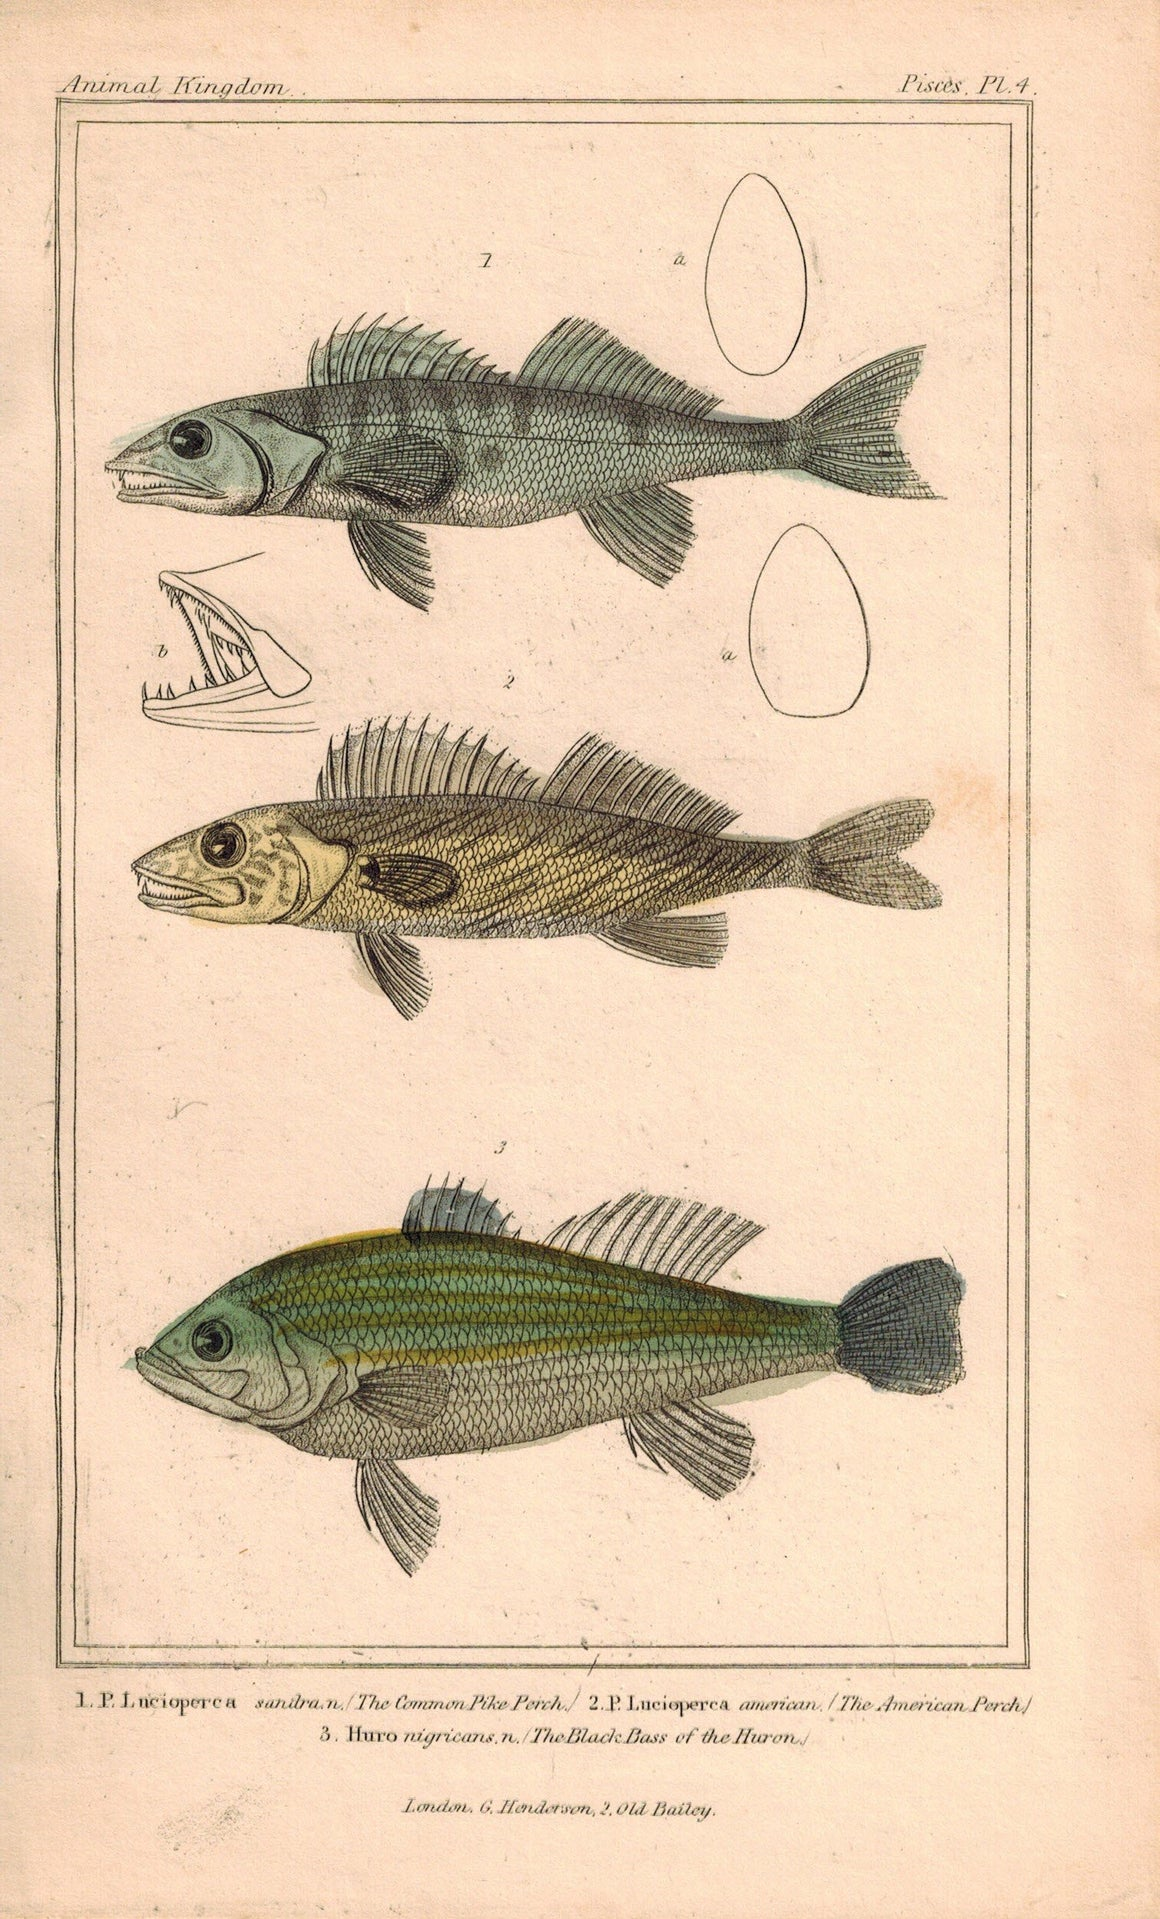 Common Pike Perch, American Perch, Black Bass 1834 Engraved Cuvier Fish Print 4